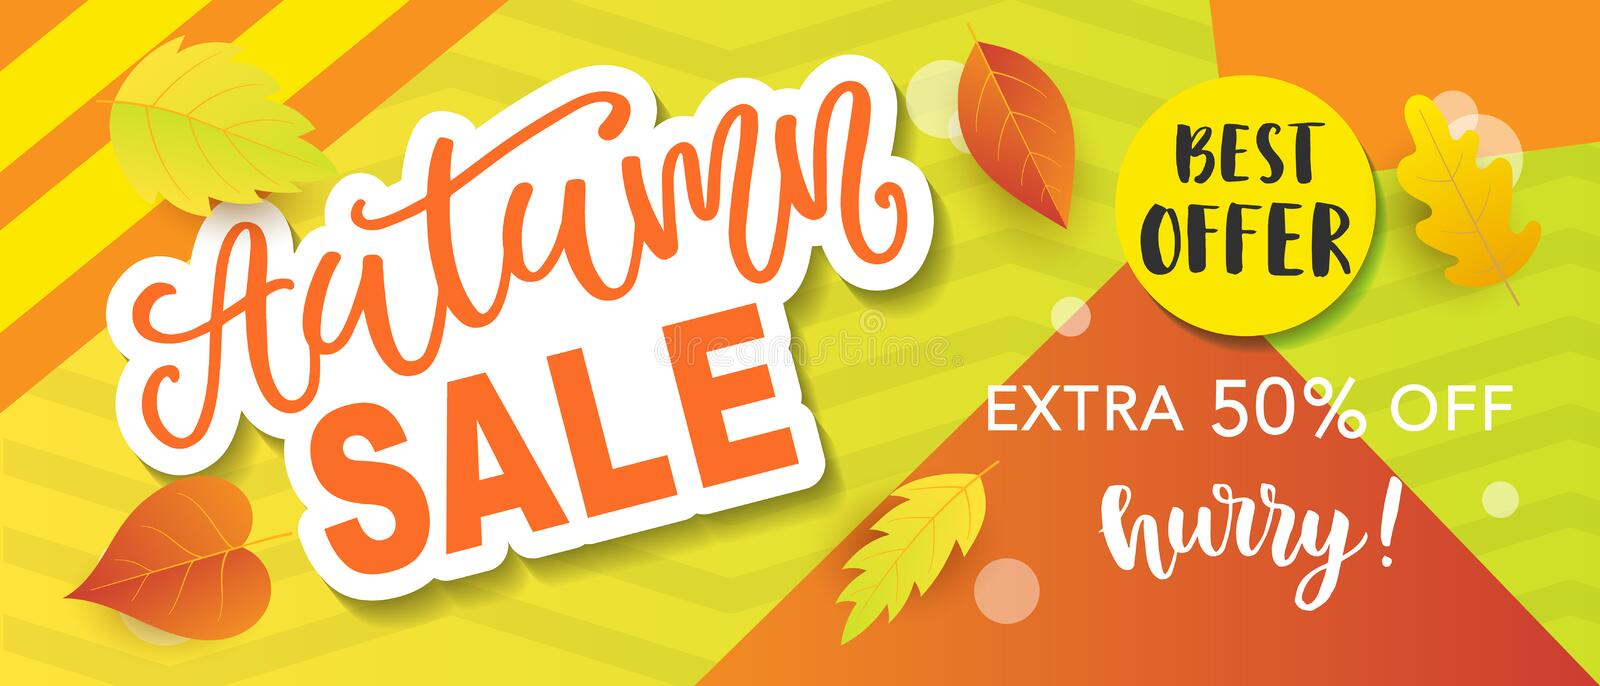 Autumn sale banner template royalty free illustration